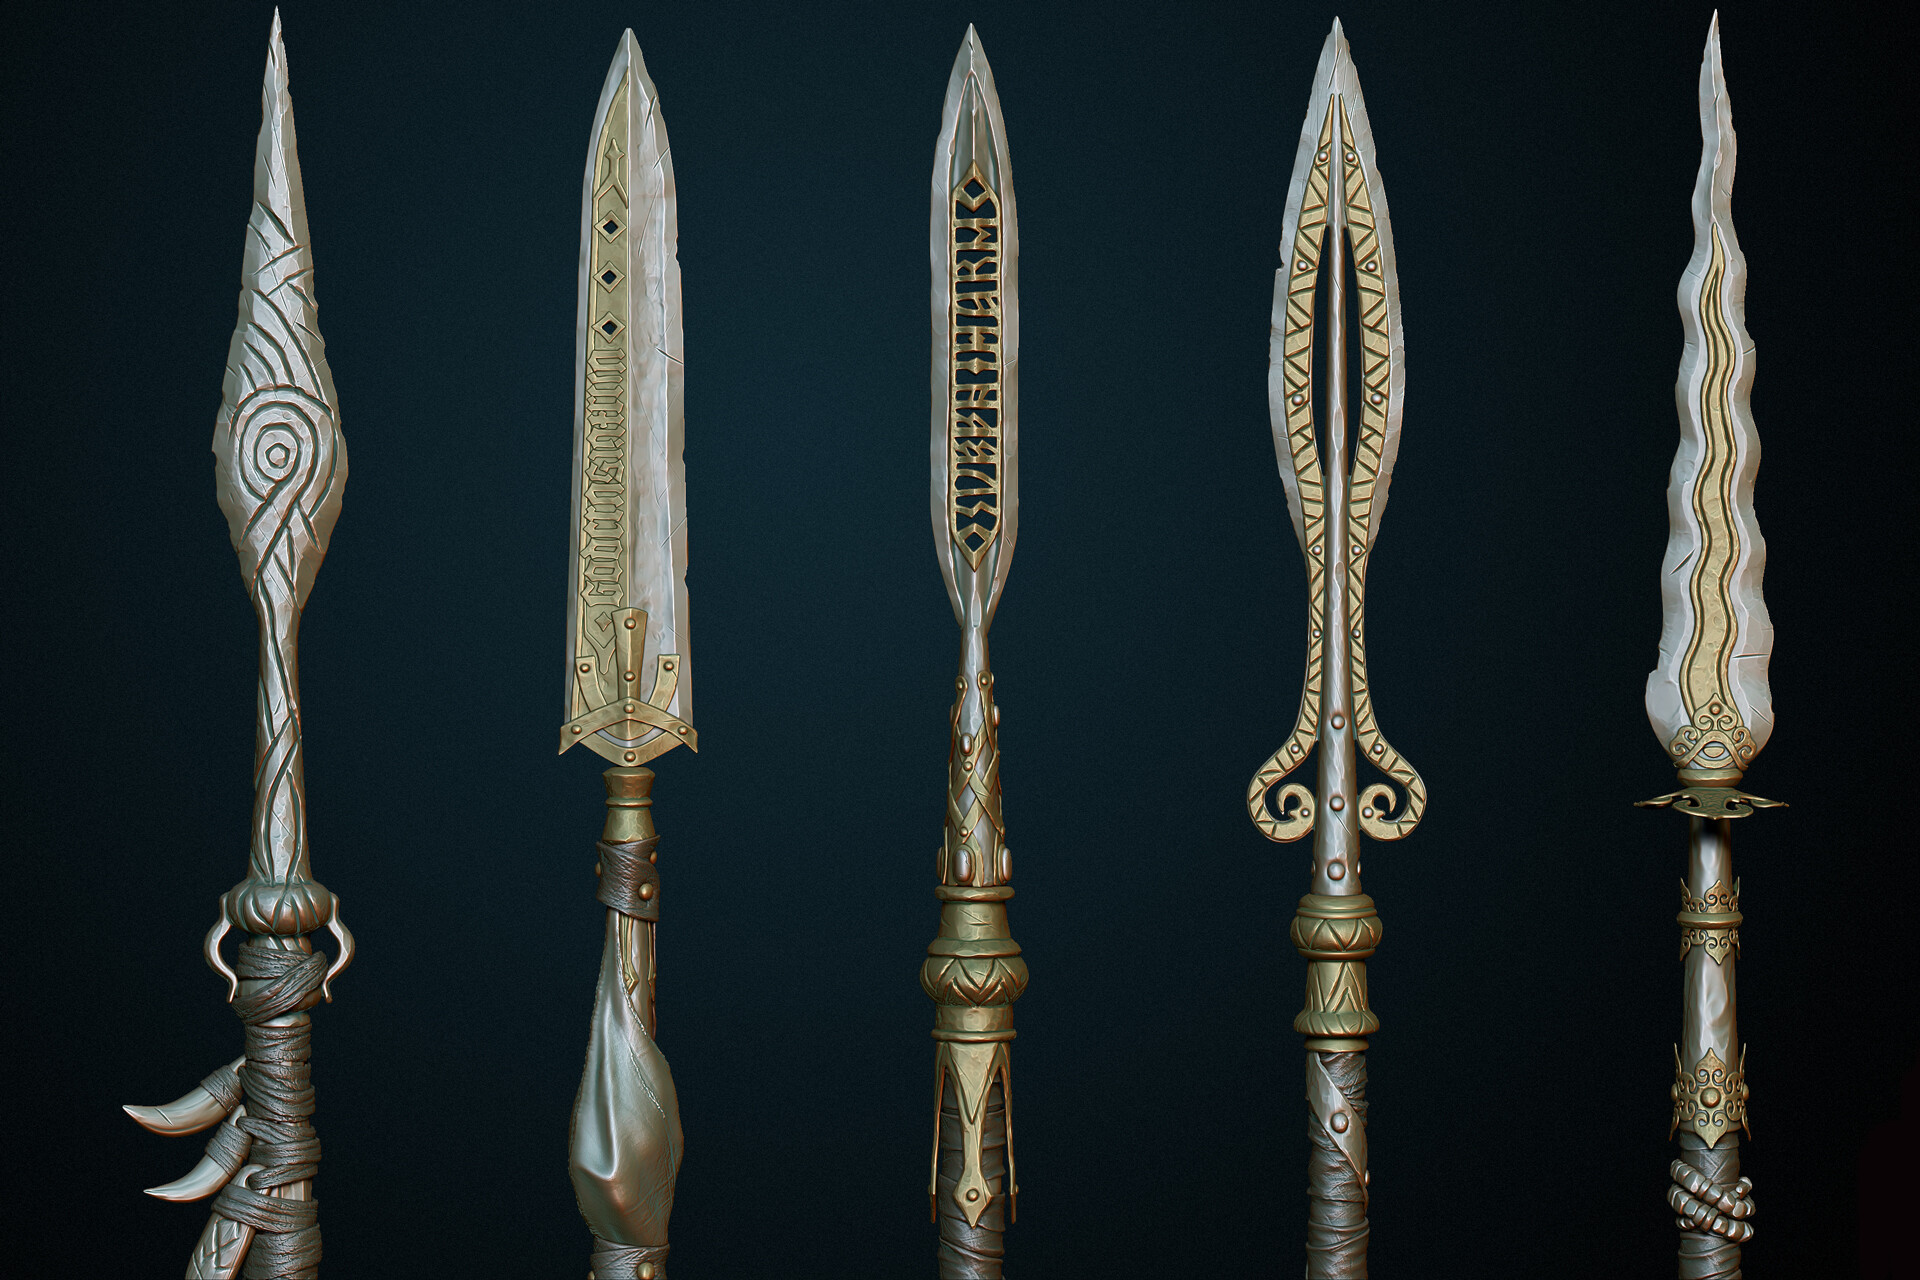 ArtStation - Medieval spear, Dmitrii Plotnikov